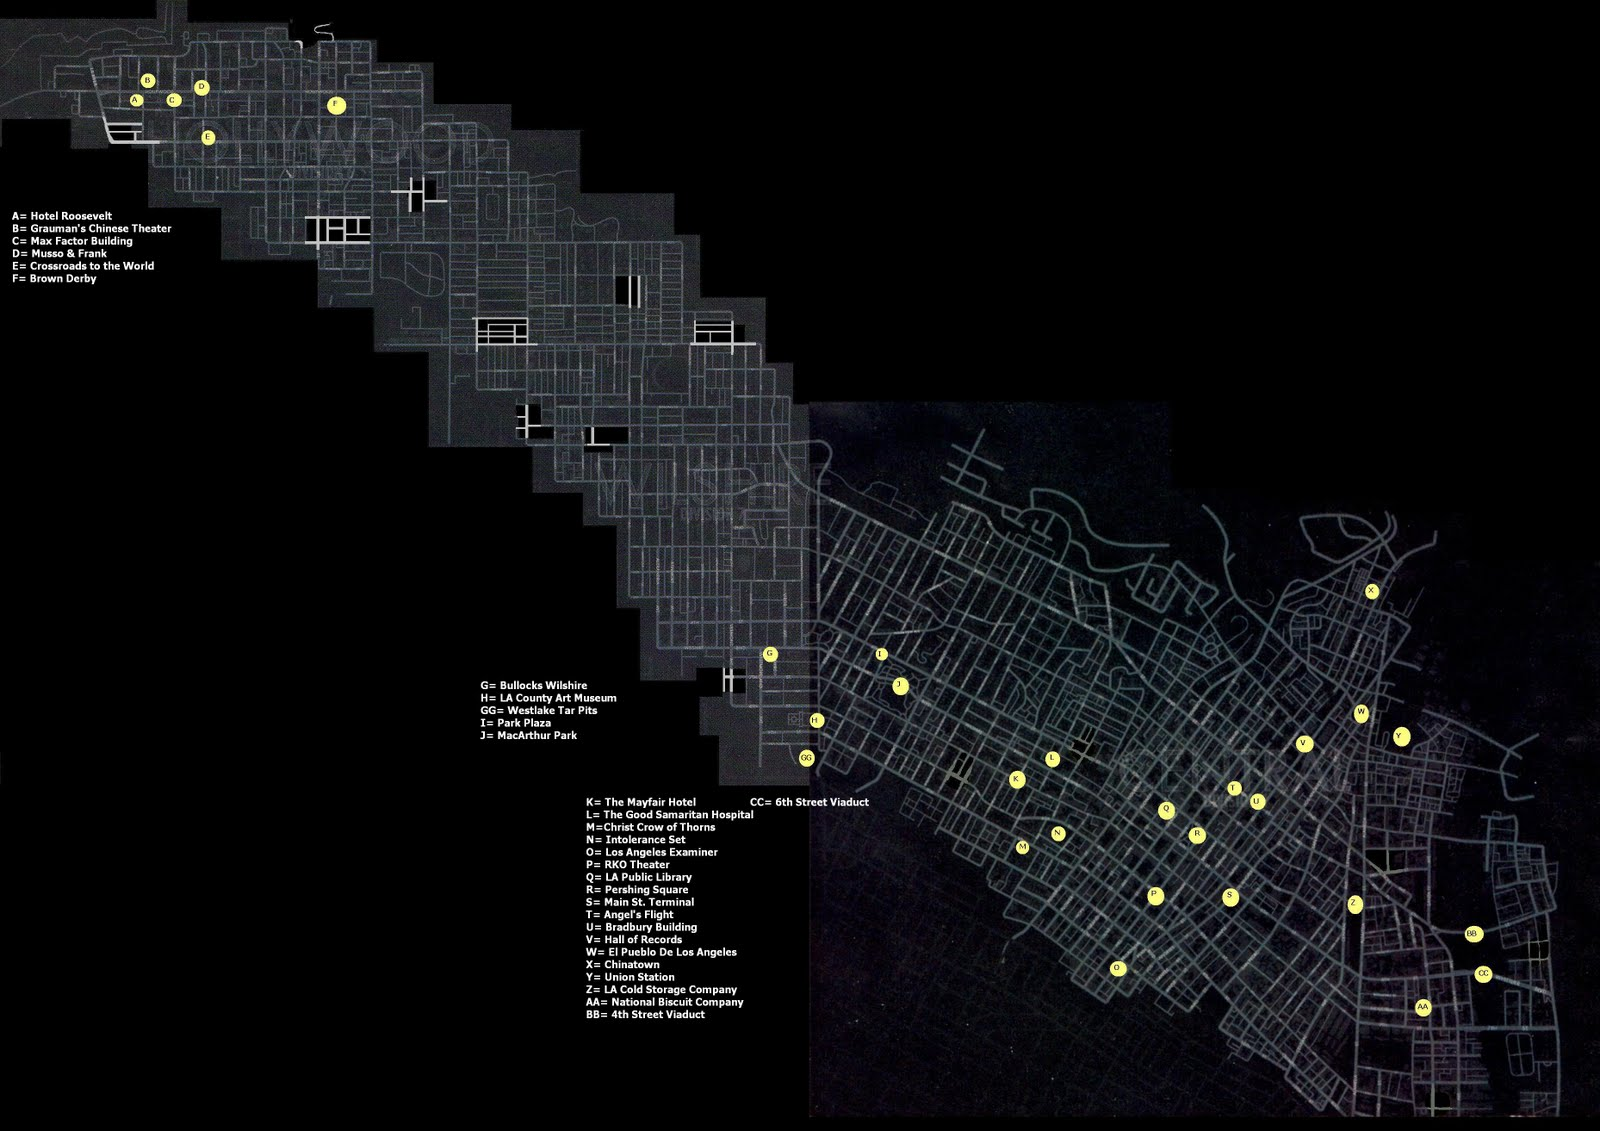 an analysis of shots ring in south central los angeles Los angeles, california detailed profile toggle navigation los angeles: layers of los angeles, shot from getty center los angeles: downtown 421 north avenue 19) (4), african-american firefighter museum (1401 south central avenue) (5), american society of military history & museum.